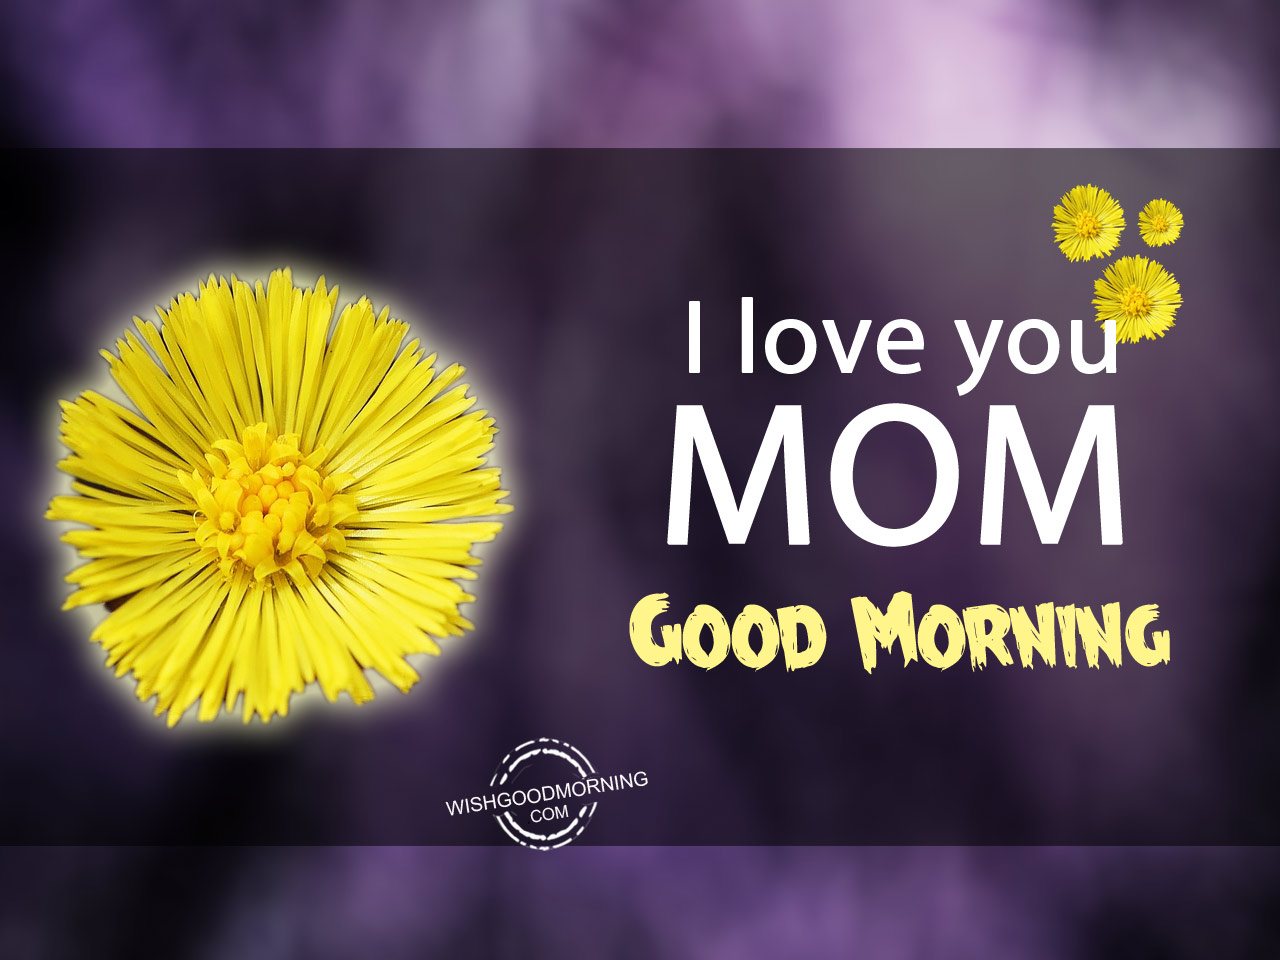 Good Morning Mom Messages : Good morning wishes for mother pictures